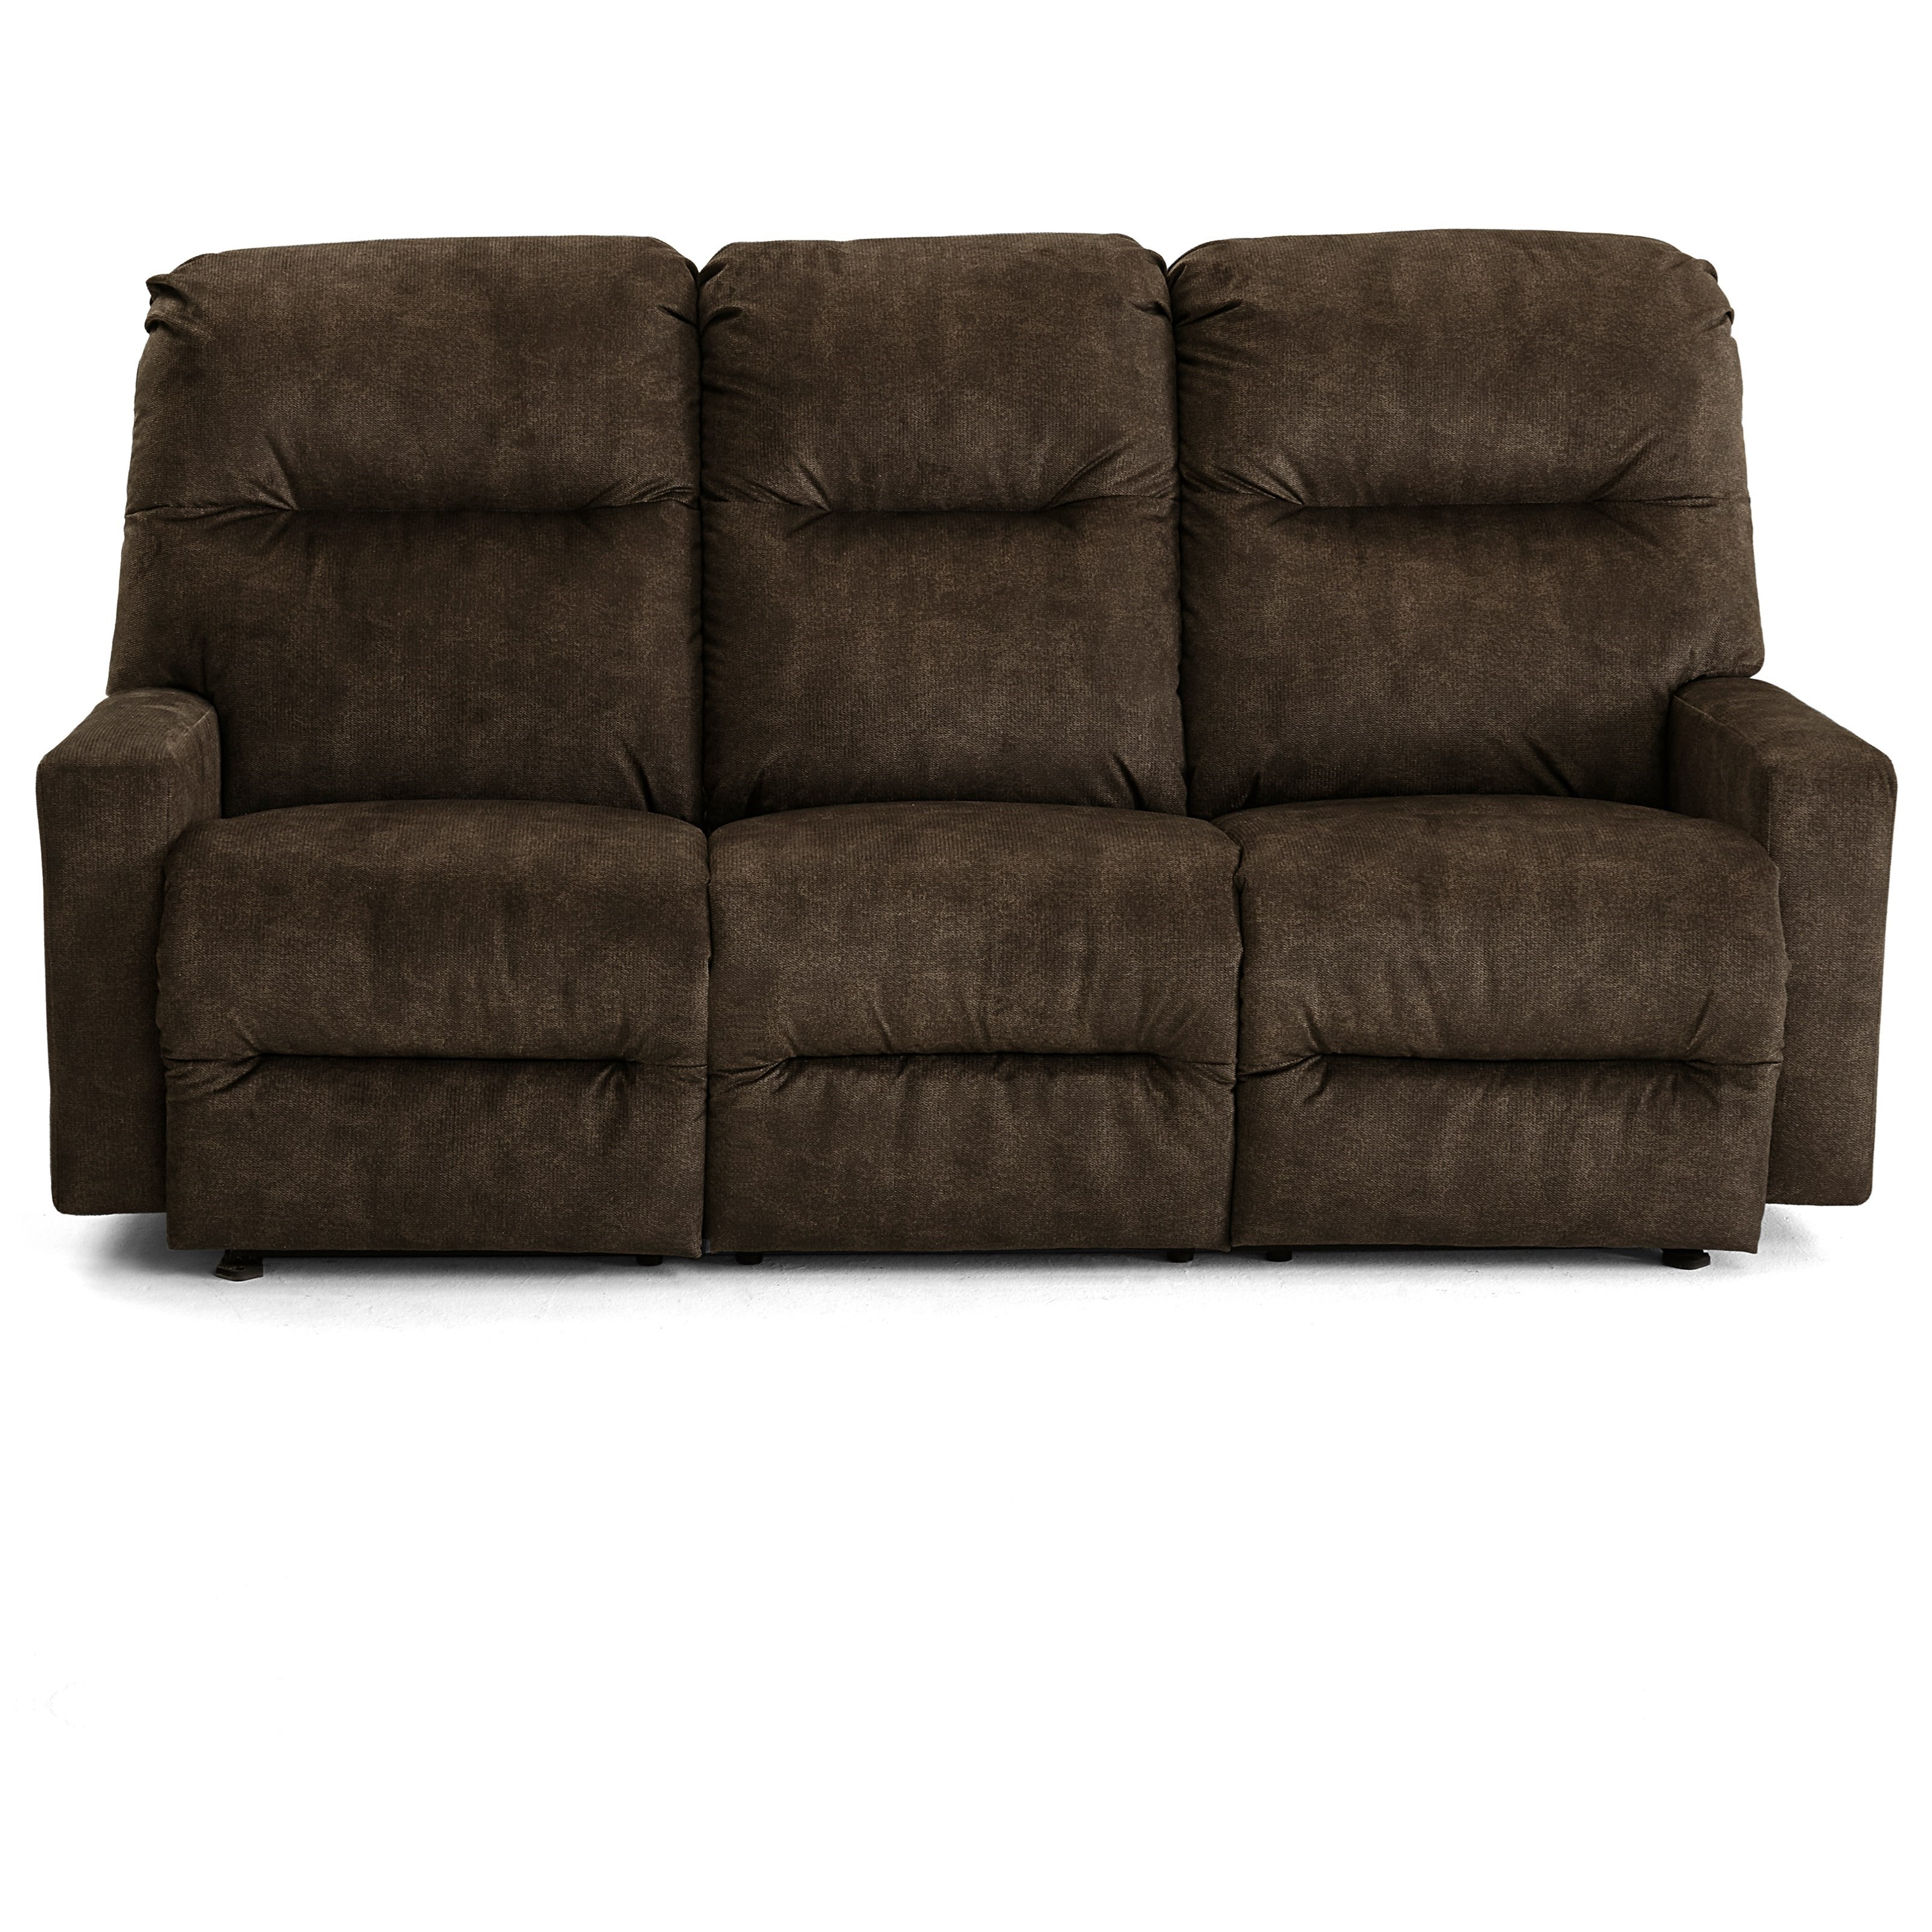 Kenley Power Reclining Space Saver Sofa by Best Home Furnishings at Baer's Furniture